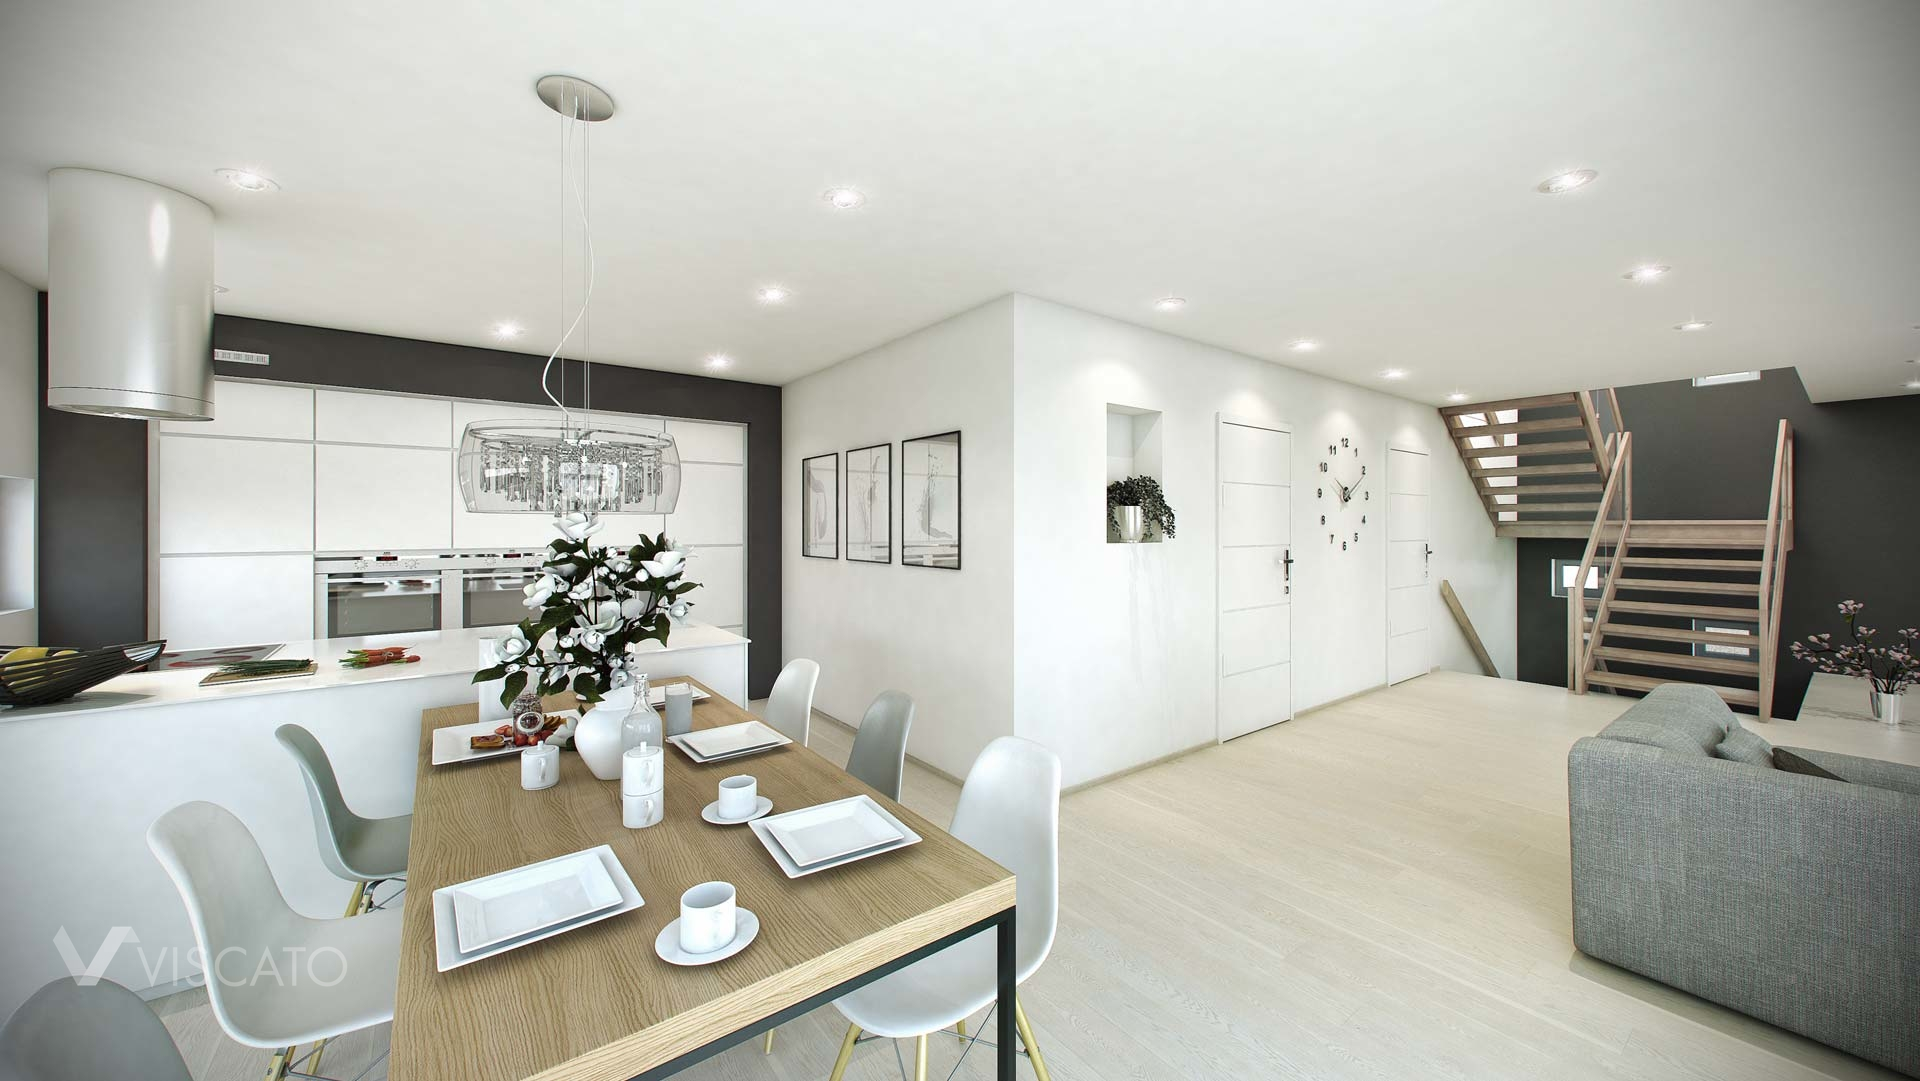 Scandinavian appartment 3d visualization- kitchen with dining table and staircase in living room